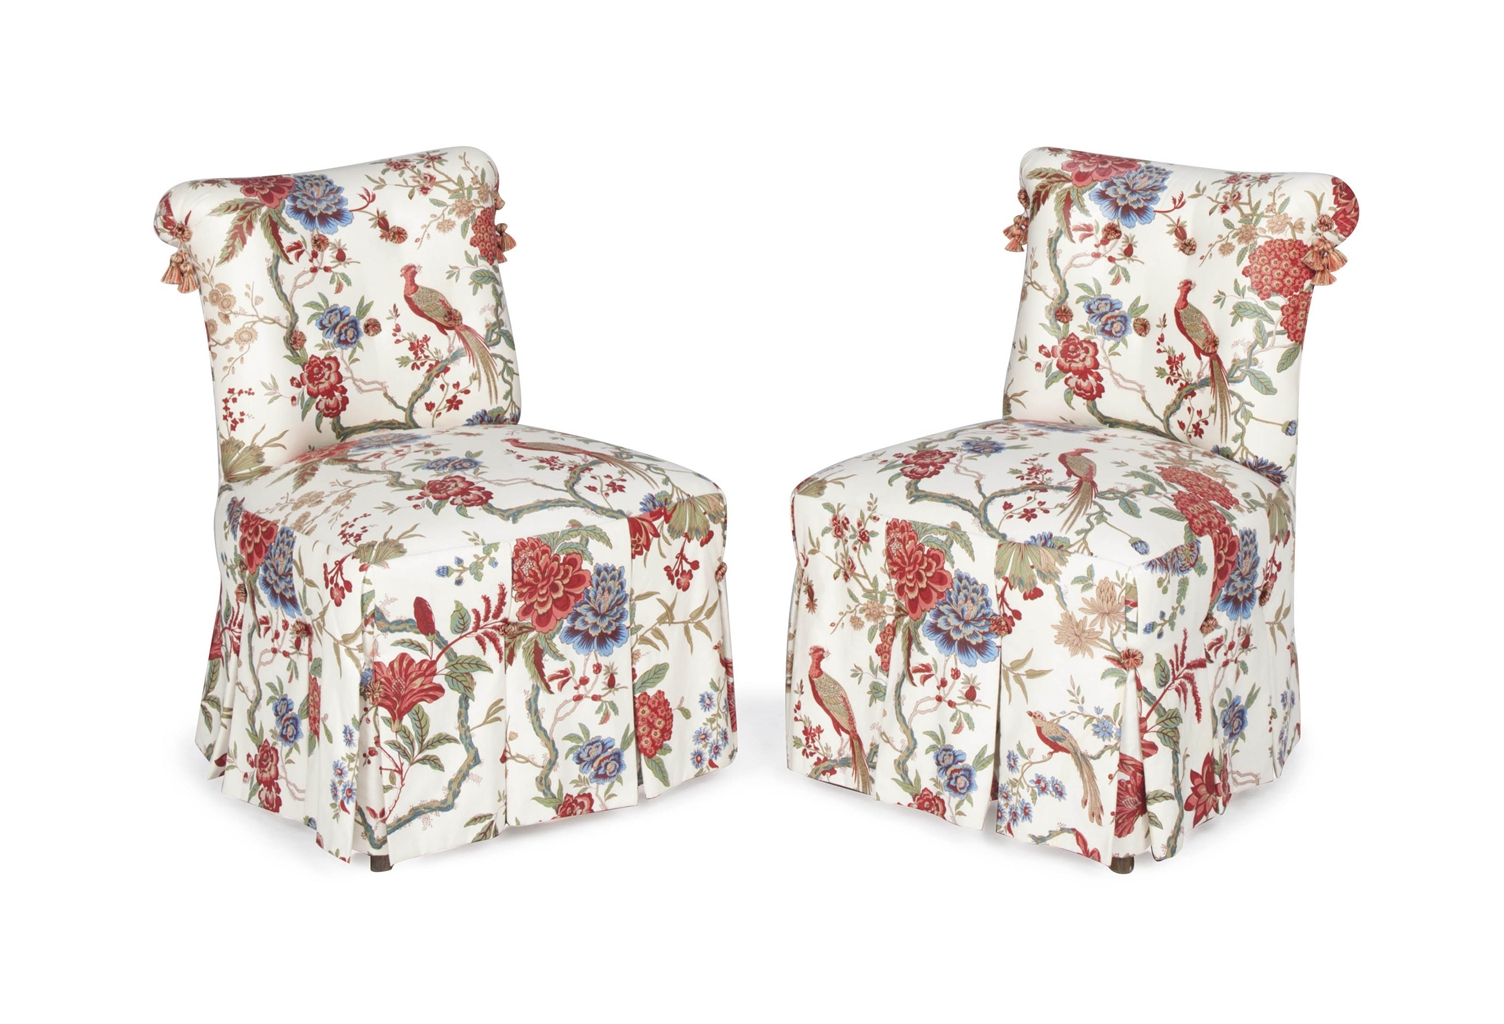 floral upholstered chair rattan chairs and table a pair of cream ground chintz slipper